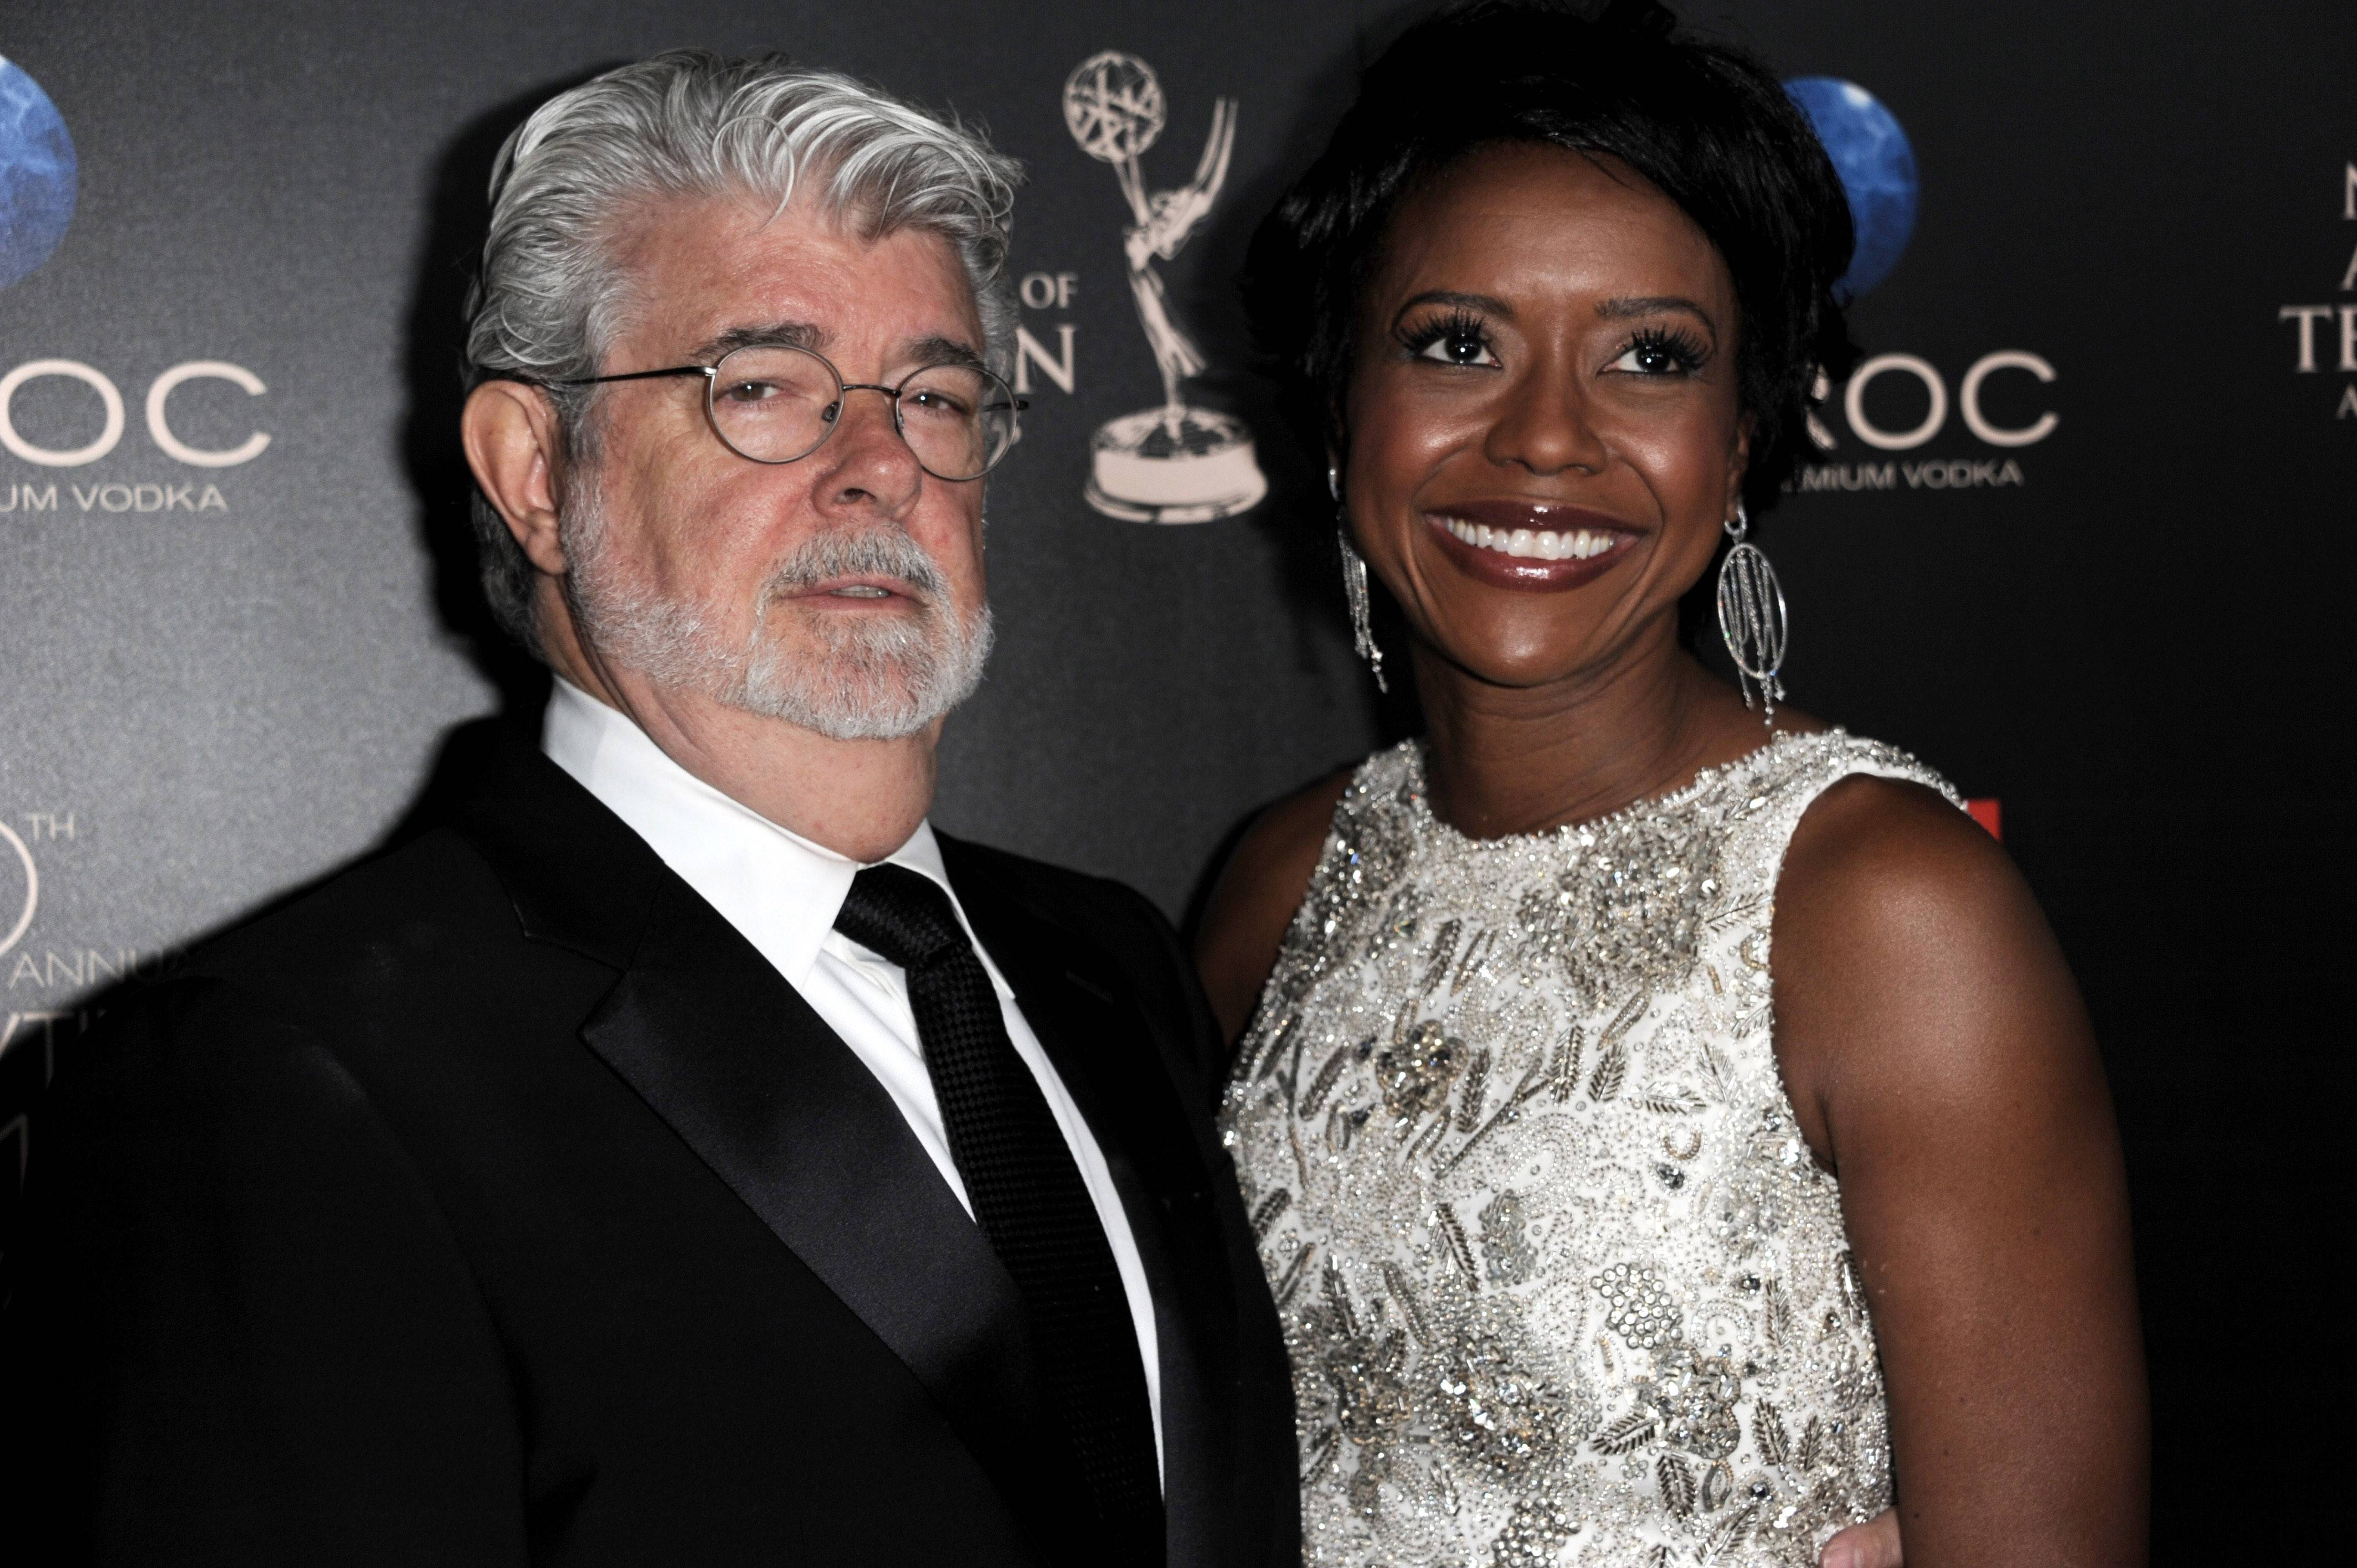 George Lucas says his wife, Mellody Hobson, encouraged him to put his planned art and movie memorabilia museum in Chicago.